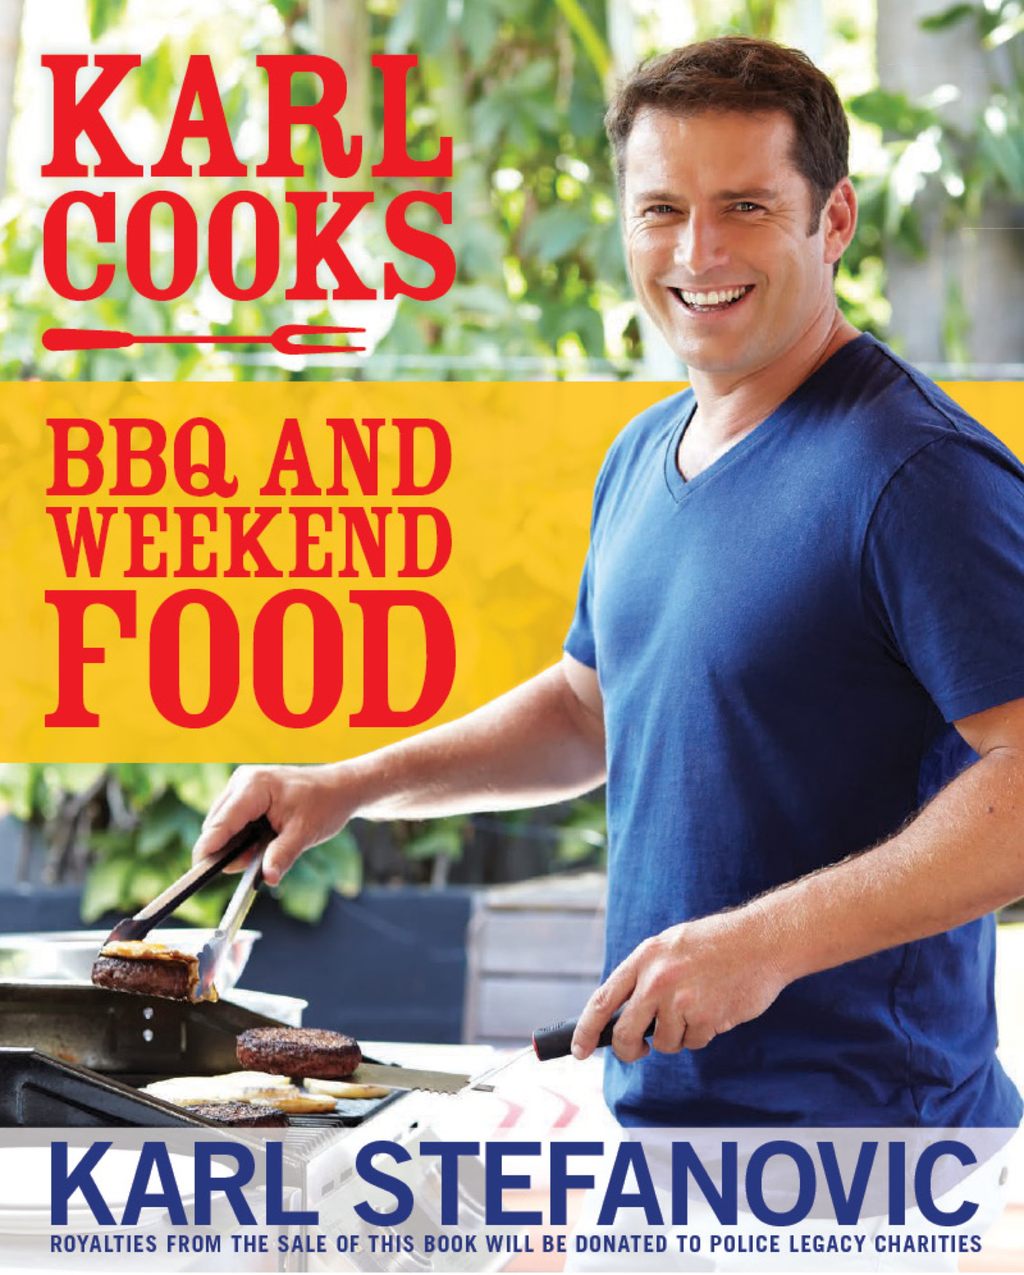 Karl Cooks BBQ and weekend food